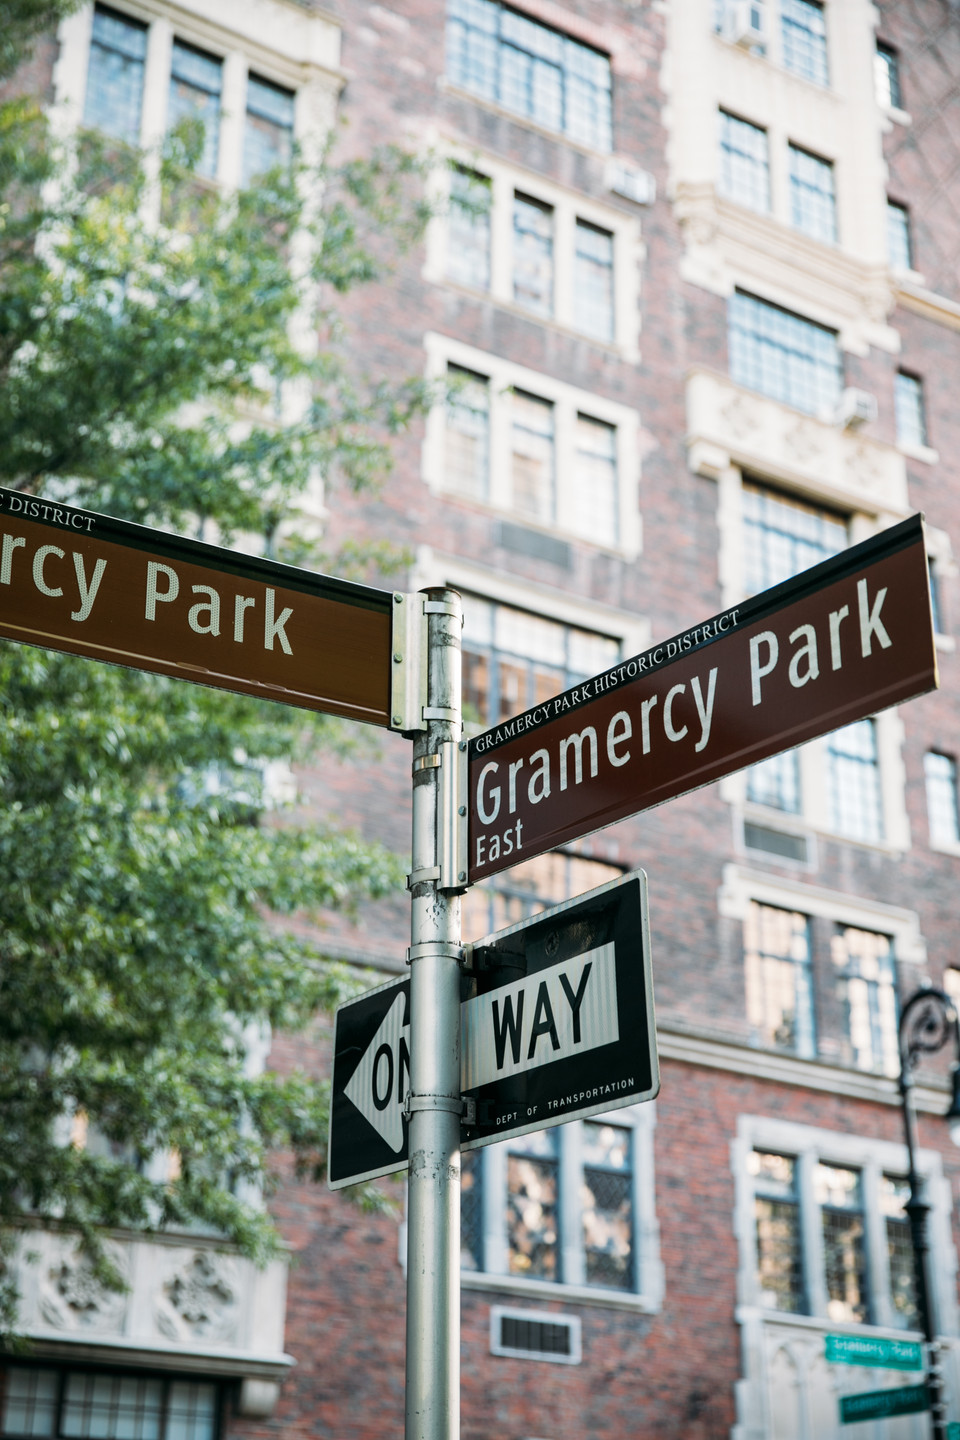 Stacy John Gramercy Park